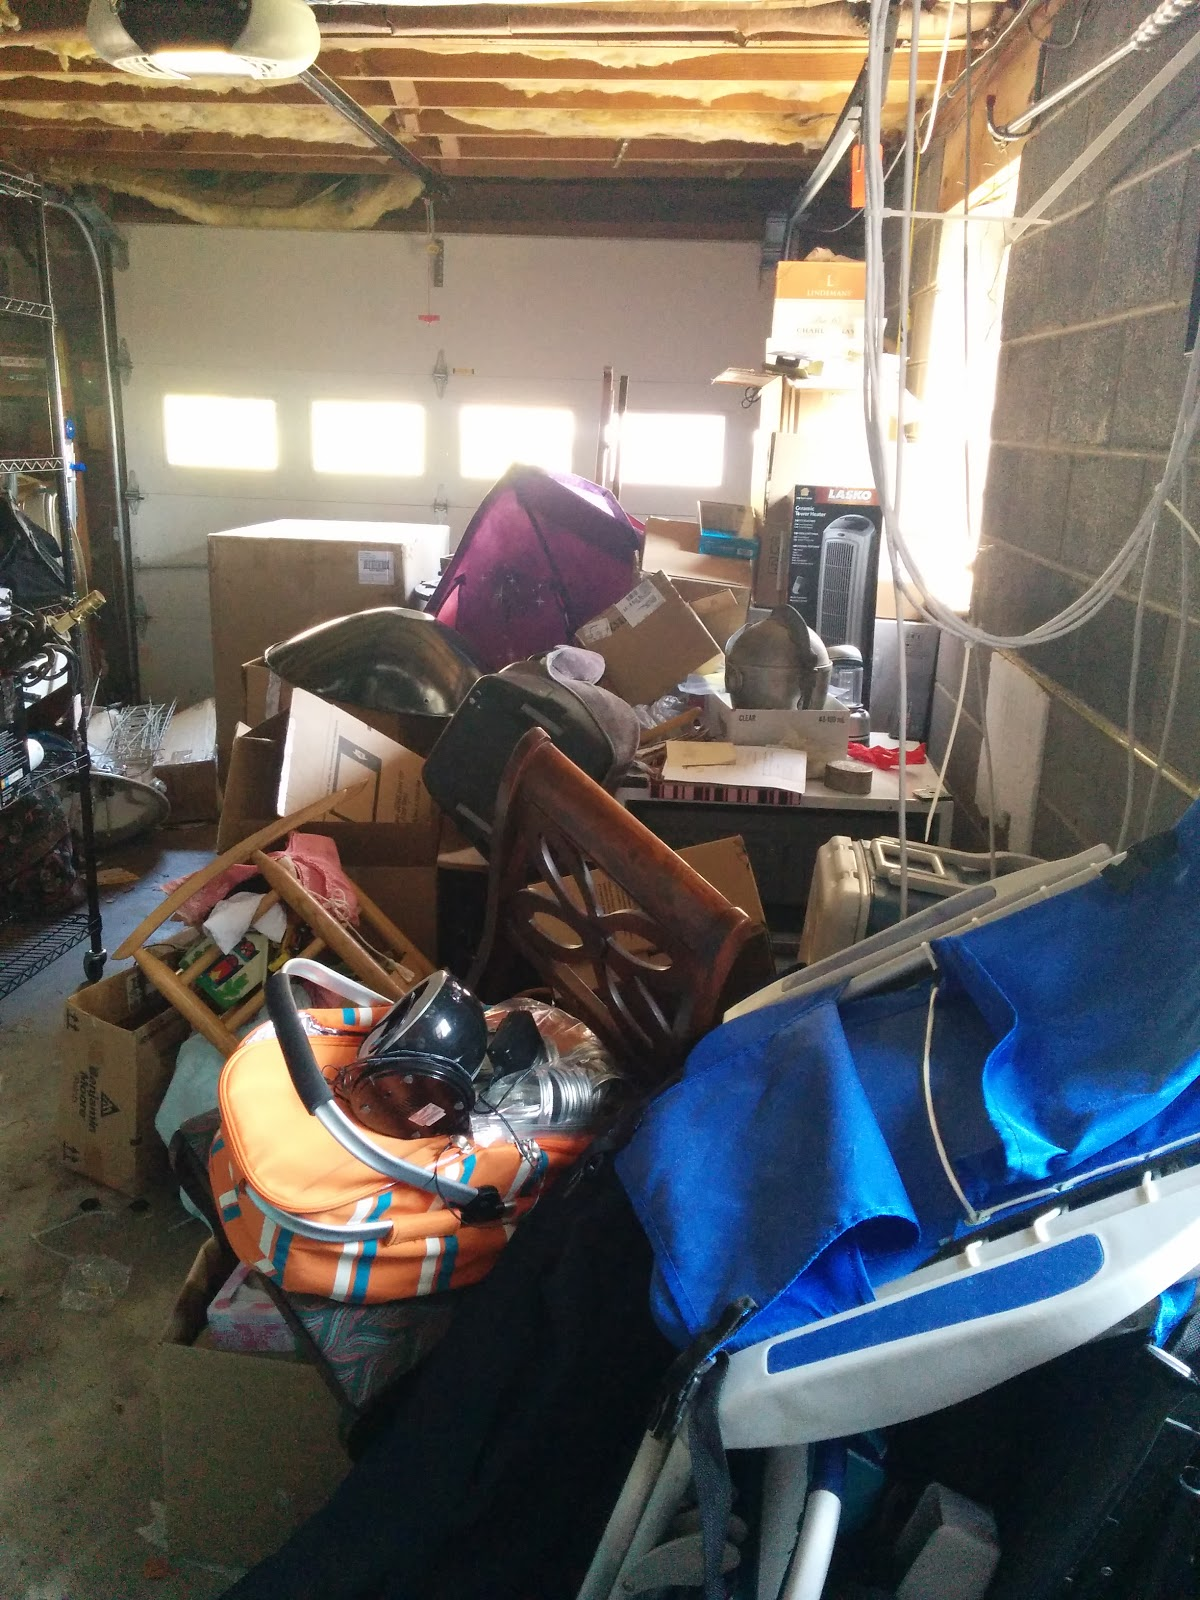 garage in need of organization